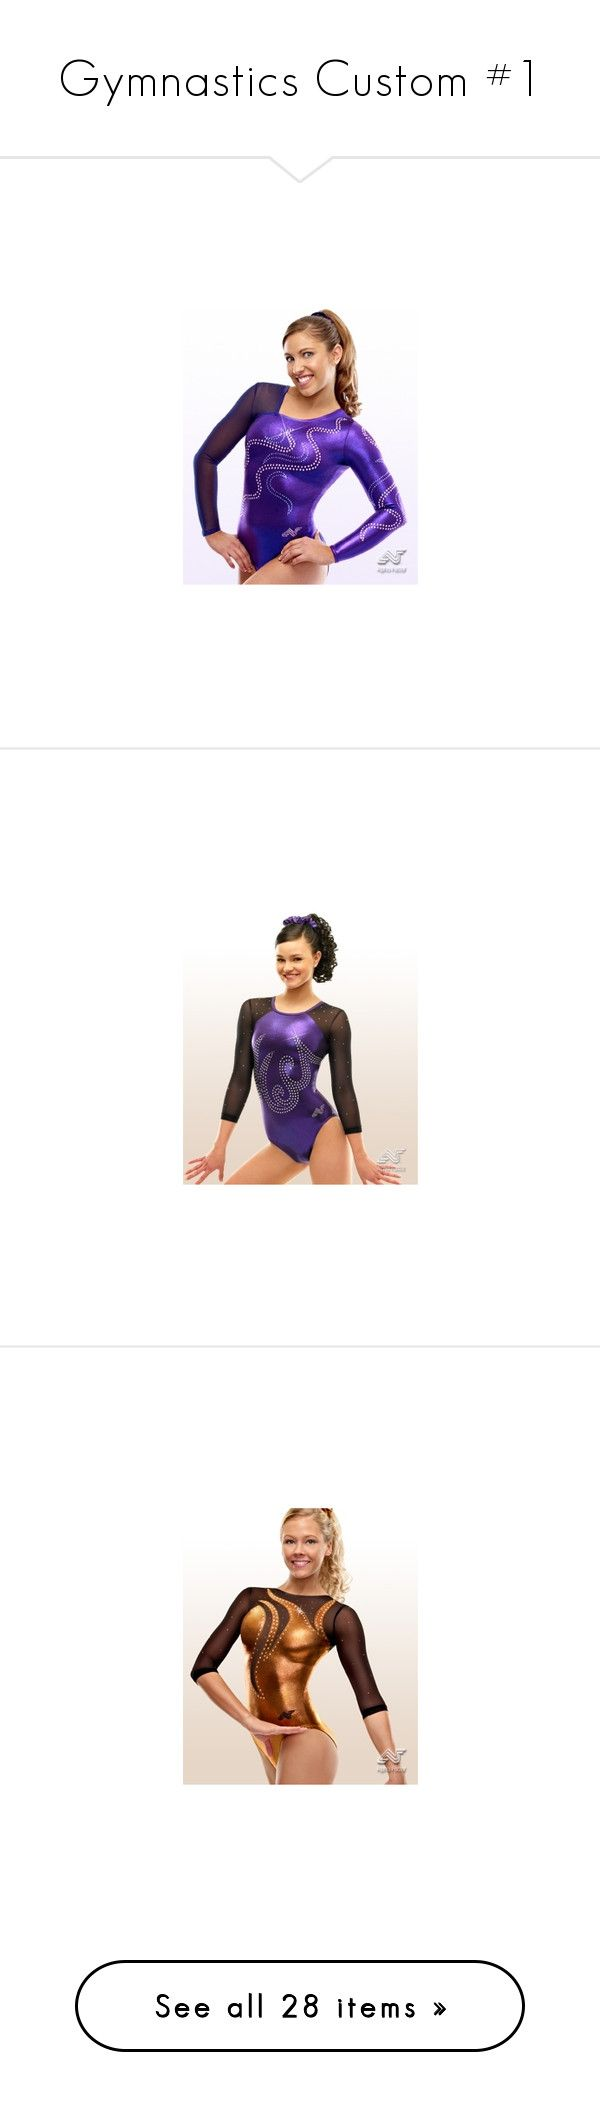 """Gymnastics Custom #1"" by lgdalaten ❤ liked on Polyvore featuring gymnastics, sports, tops, brown top, long sleeve tops, brown long sleeve top, purple long sleeve top, purple top, costumes and dance"